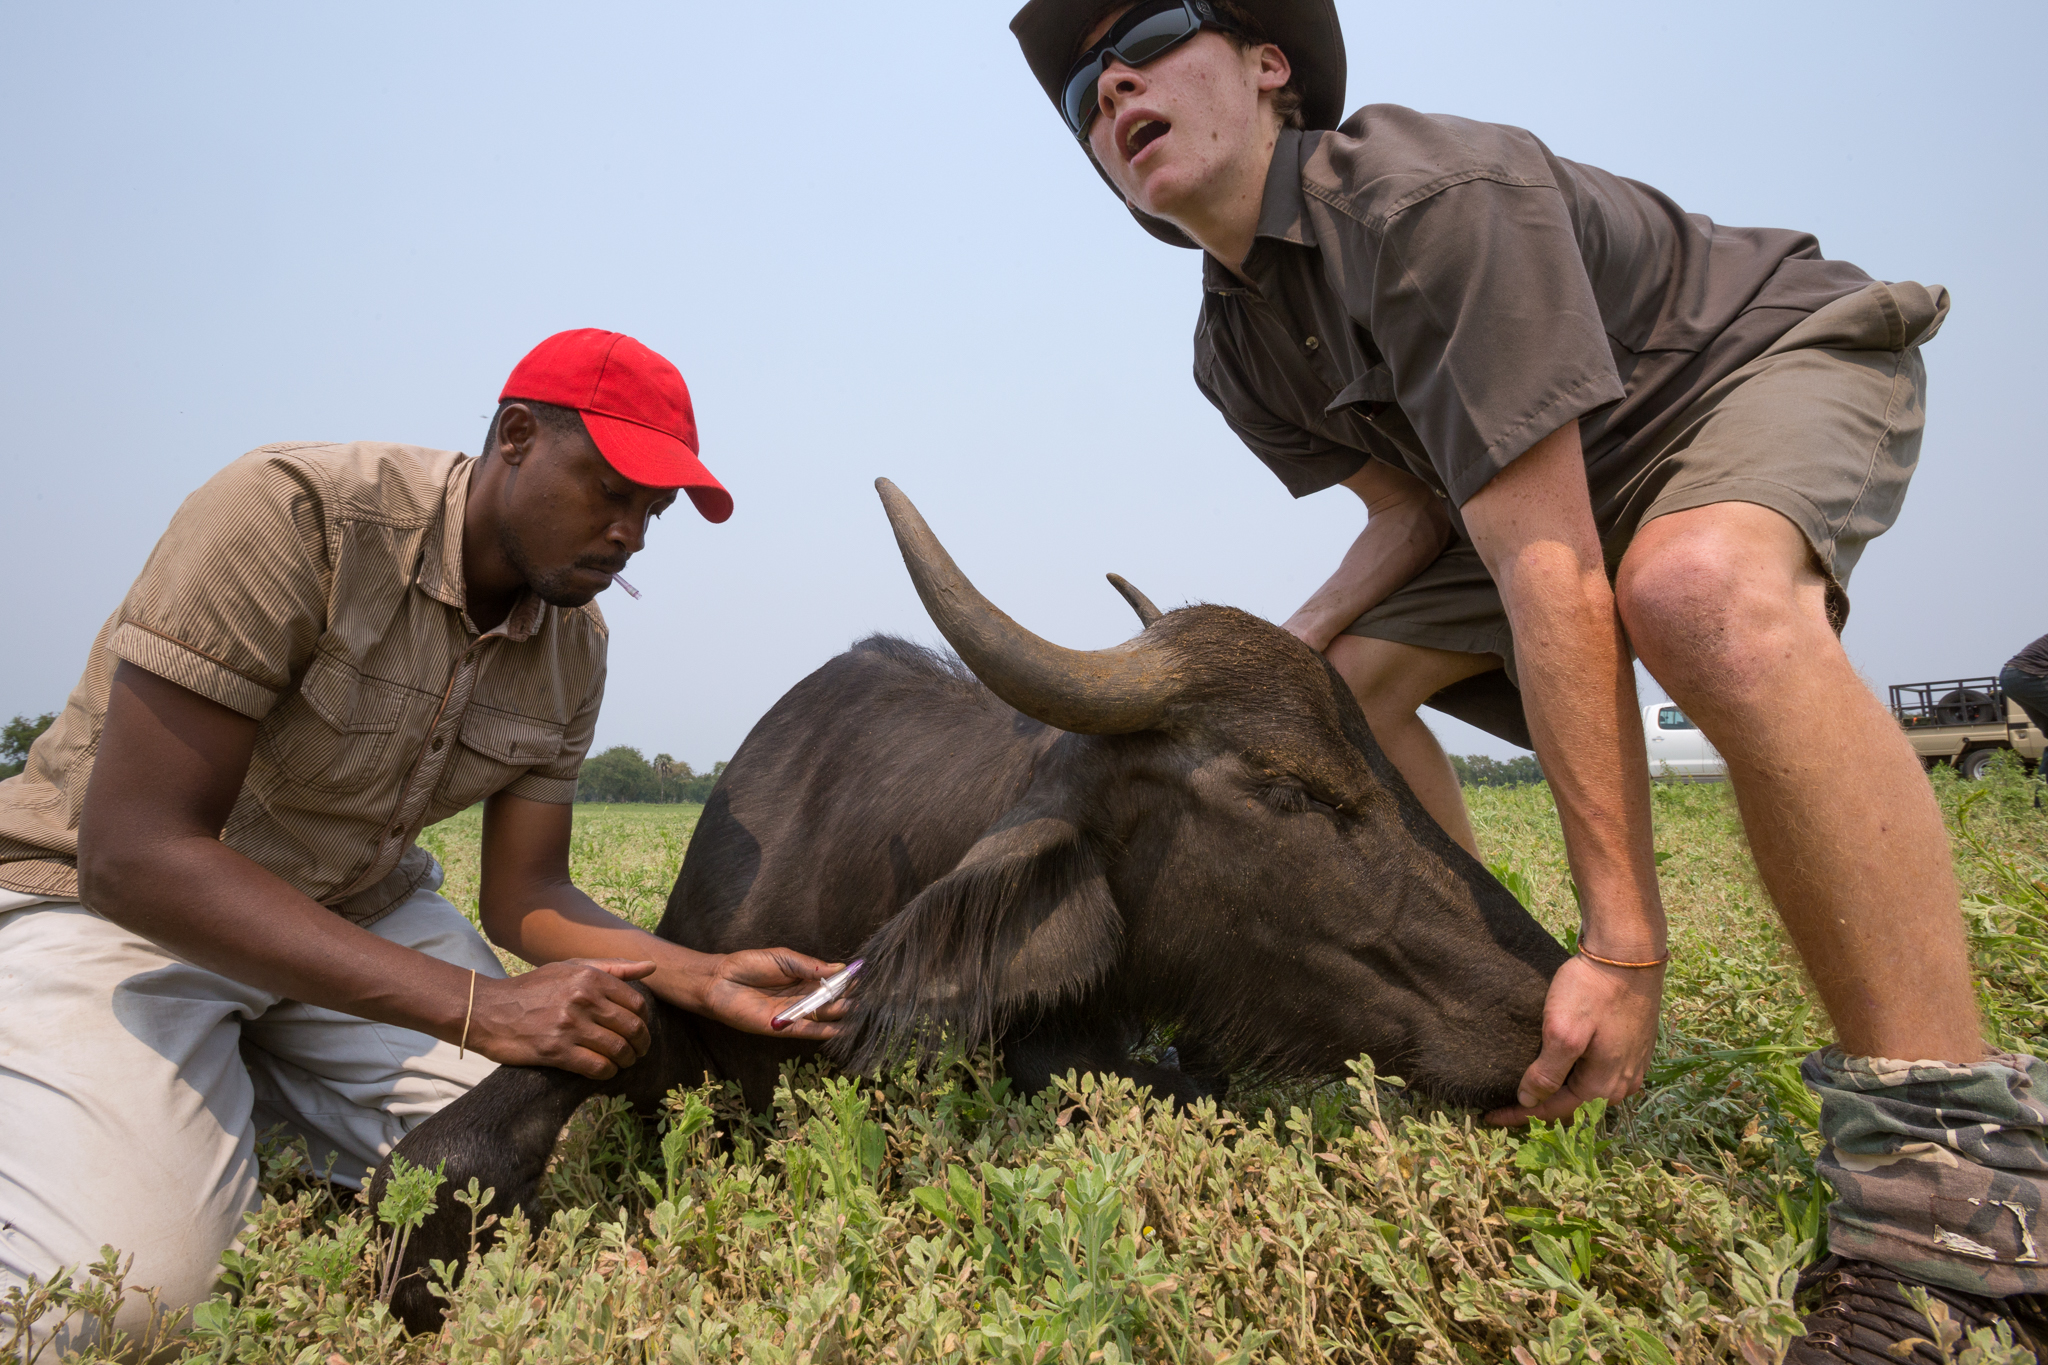 A veterinarian in Gorongosa National Park takes a blood sample from a water buffalo (Bubalus bubalis) prior to its release. Once abundant prior to Mozambique's 16-year-long civil war, the species has been slow to recover since restoration efforts began.